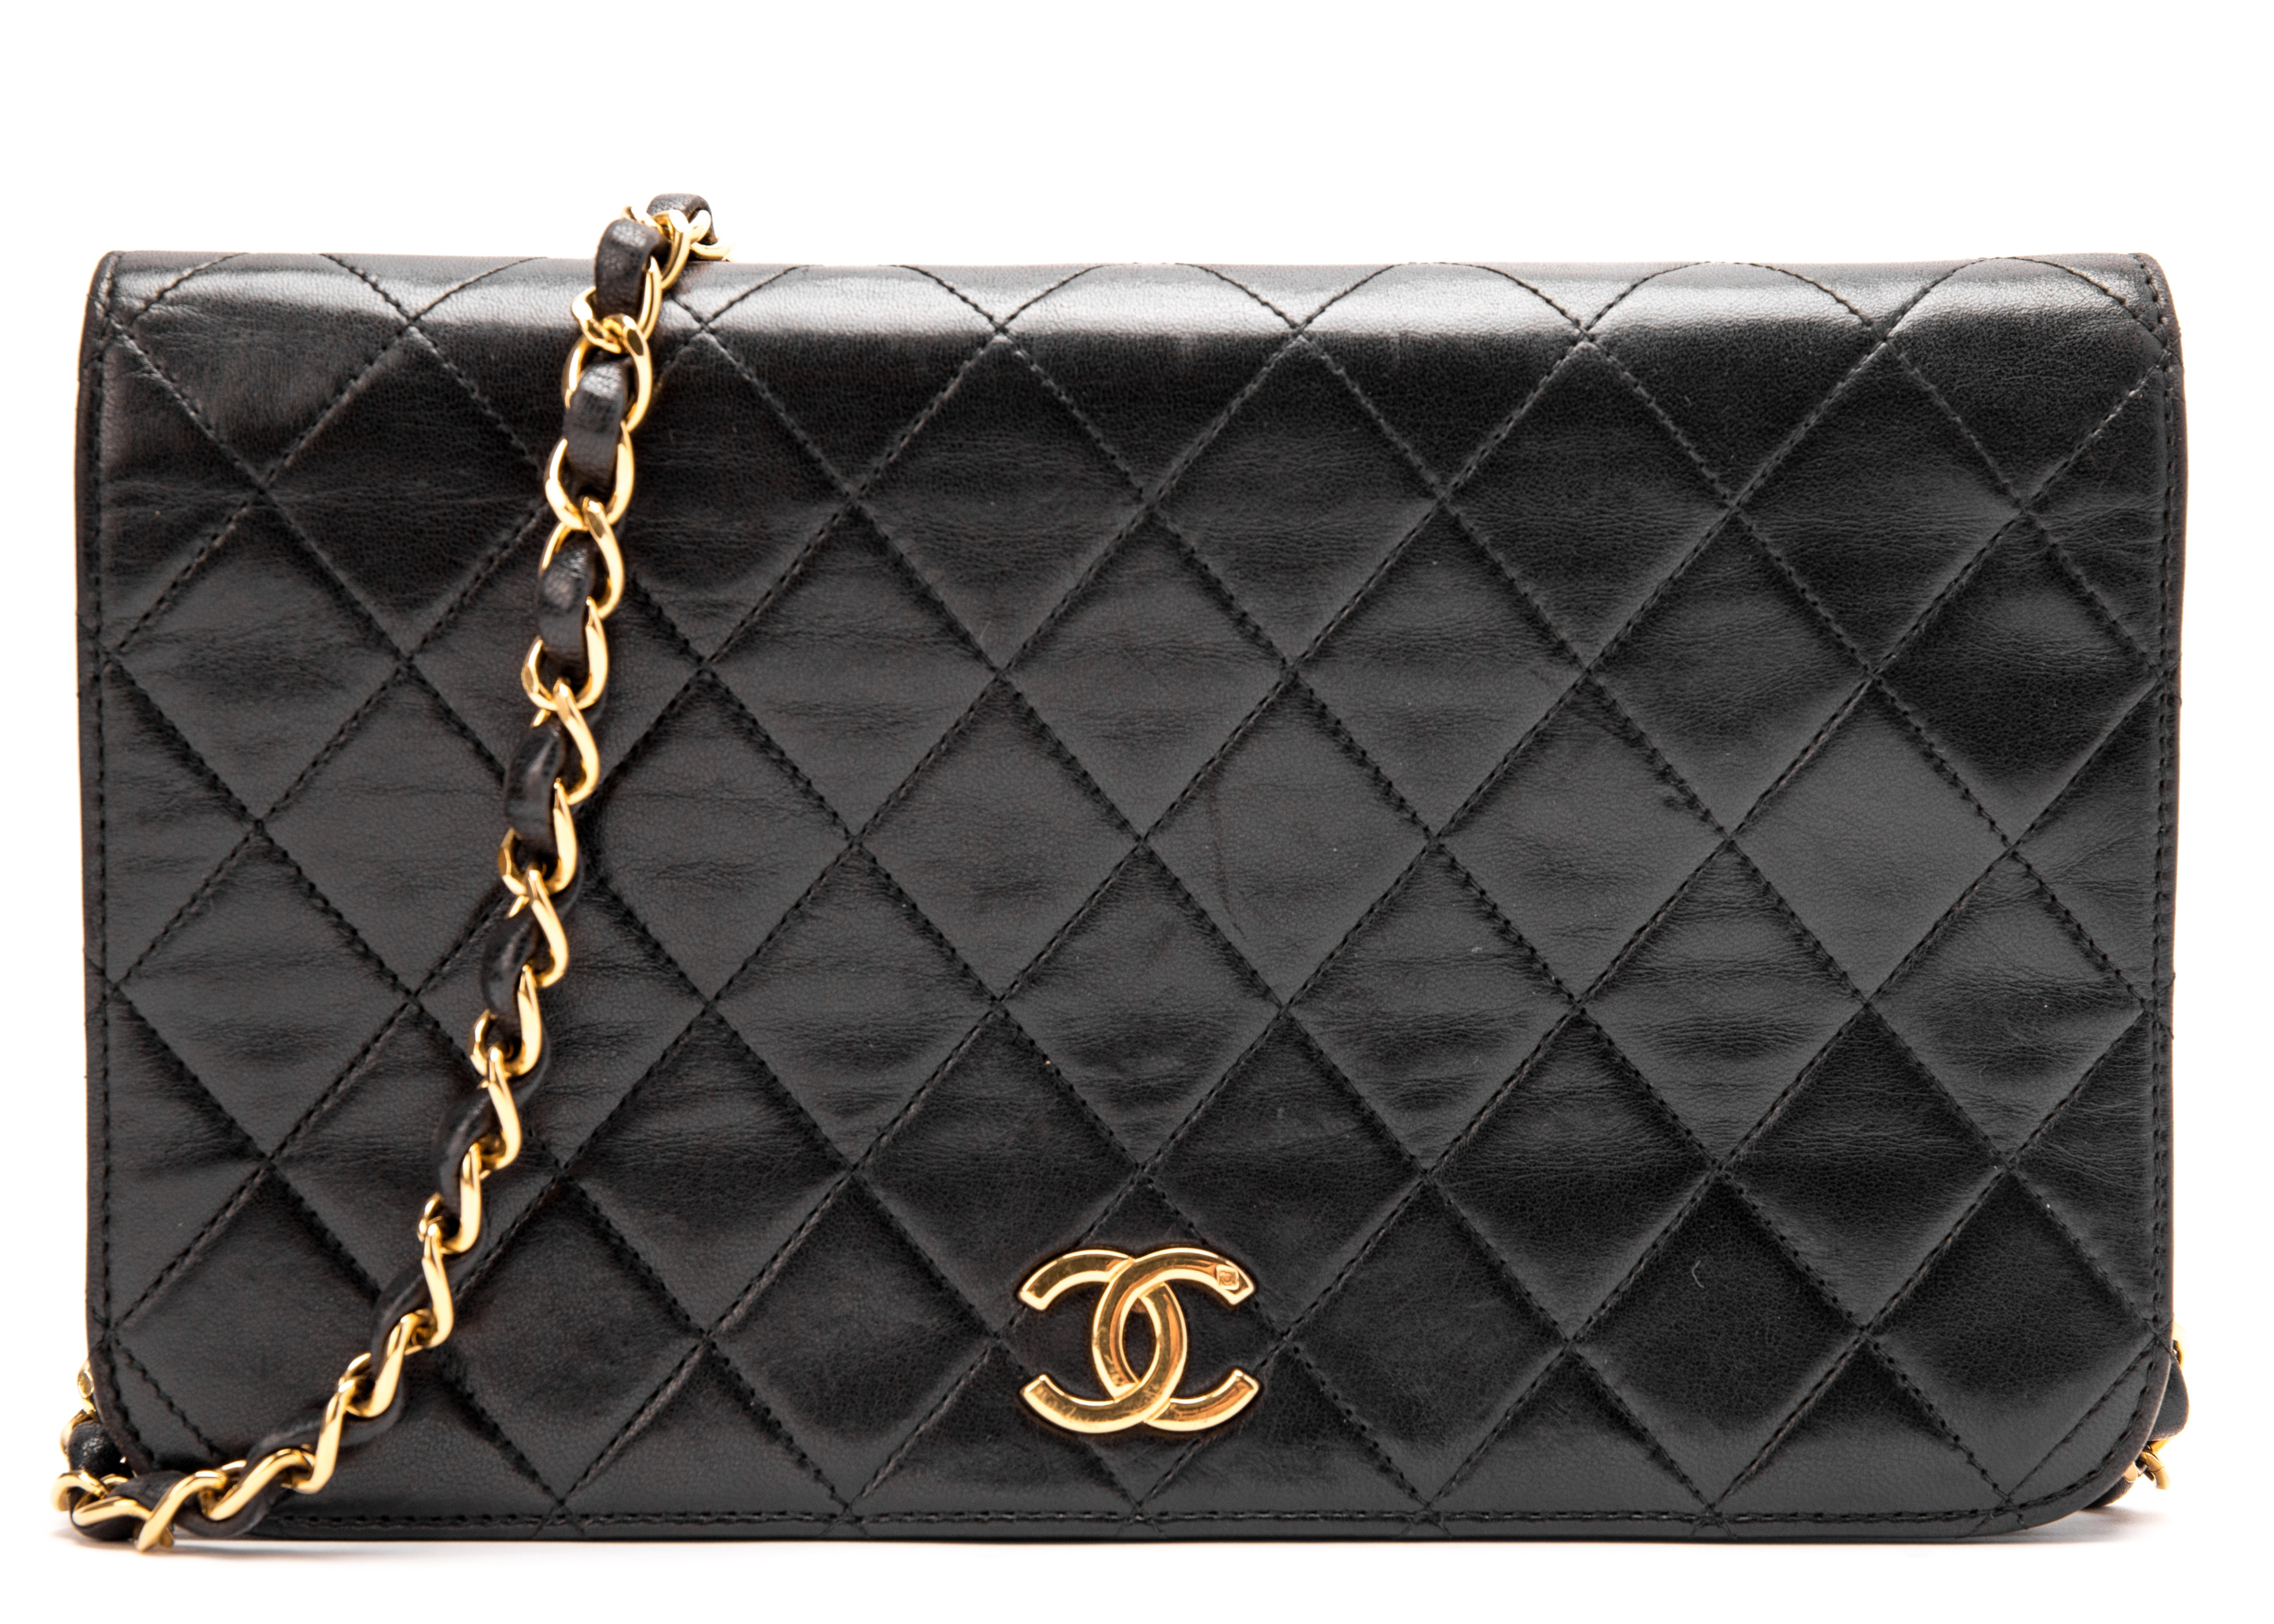 Chanel Vintage Flat Flap Quilted Small Black